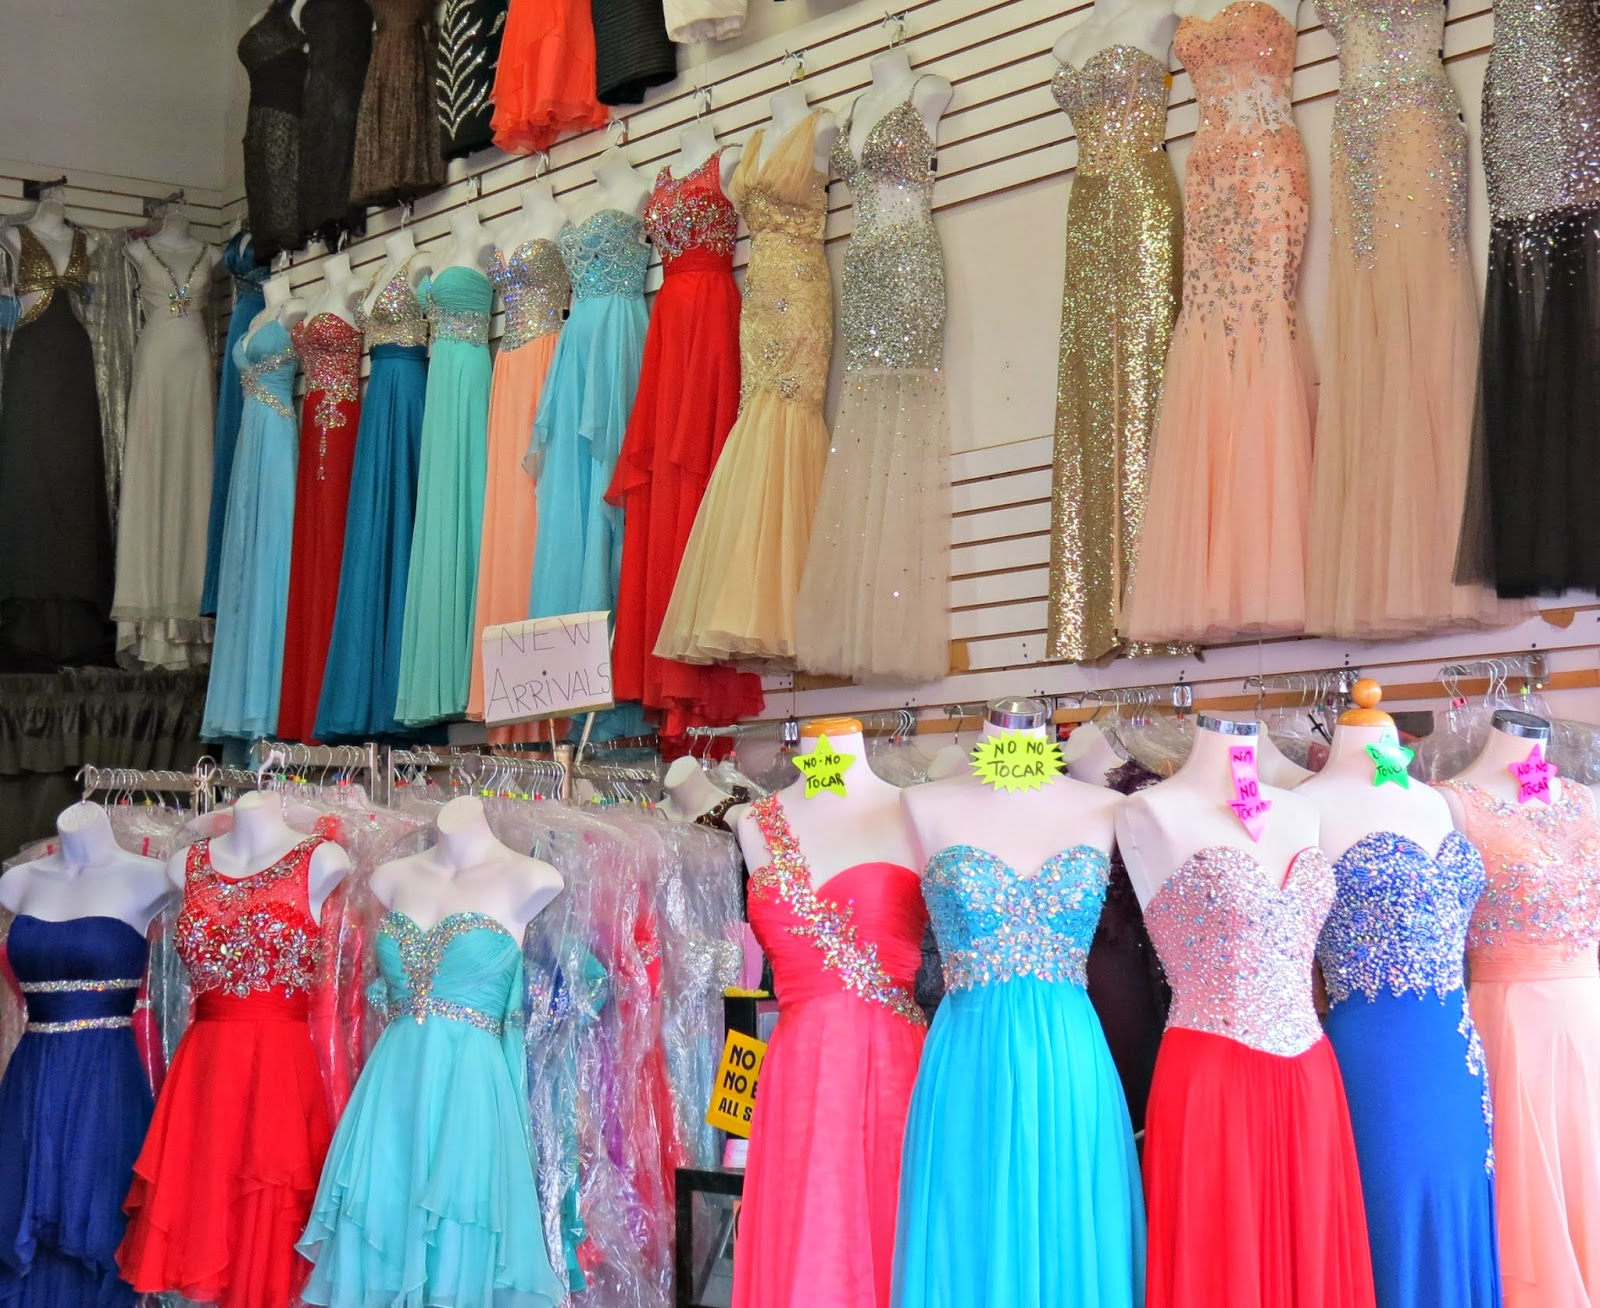 Amazing prom dress stores in los angeles adornment for Wedding dresses garment district los angeles ca